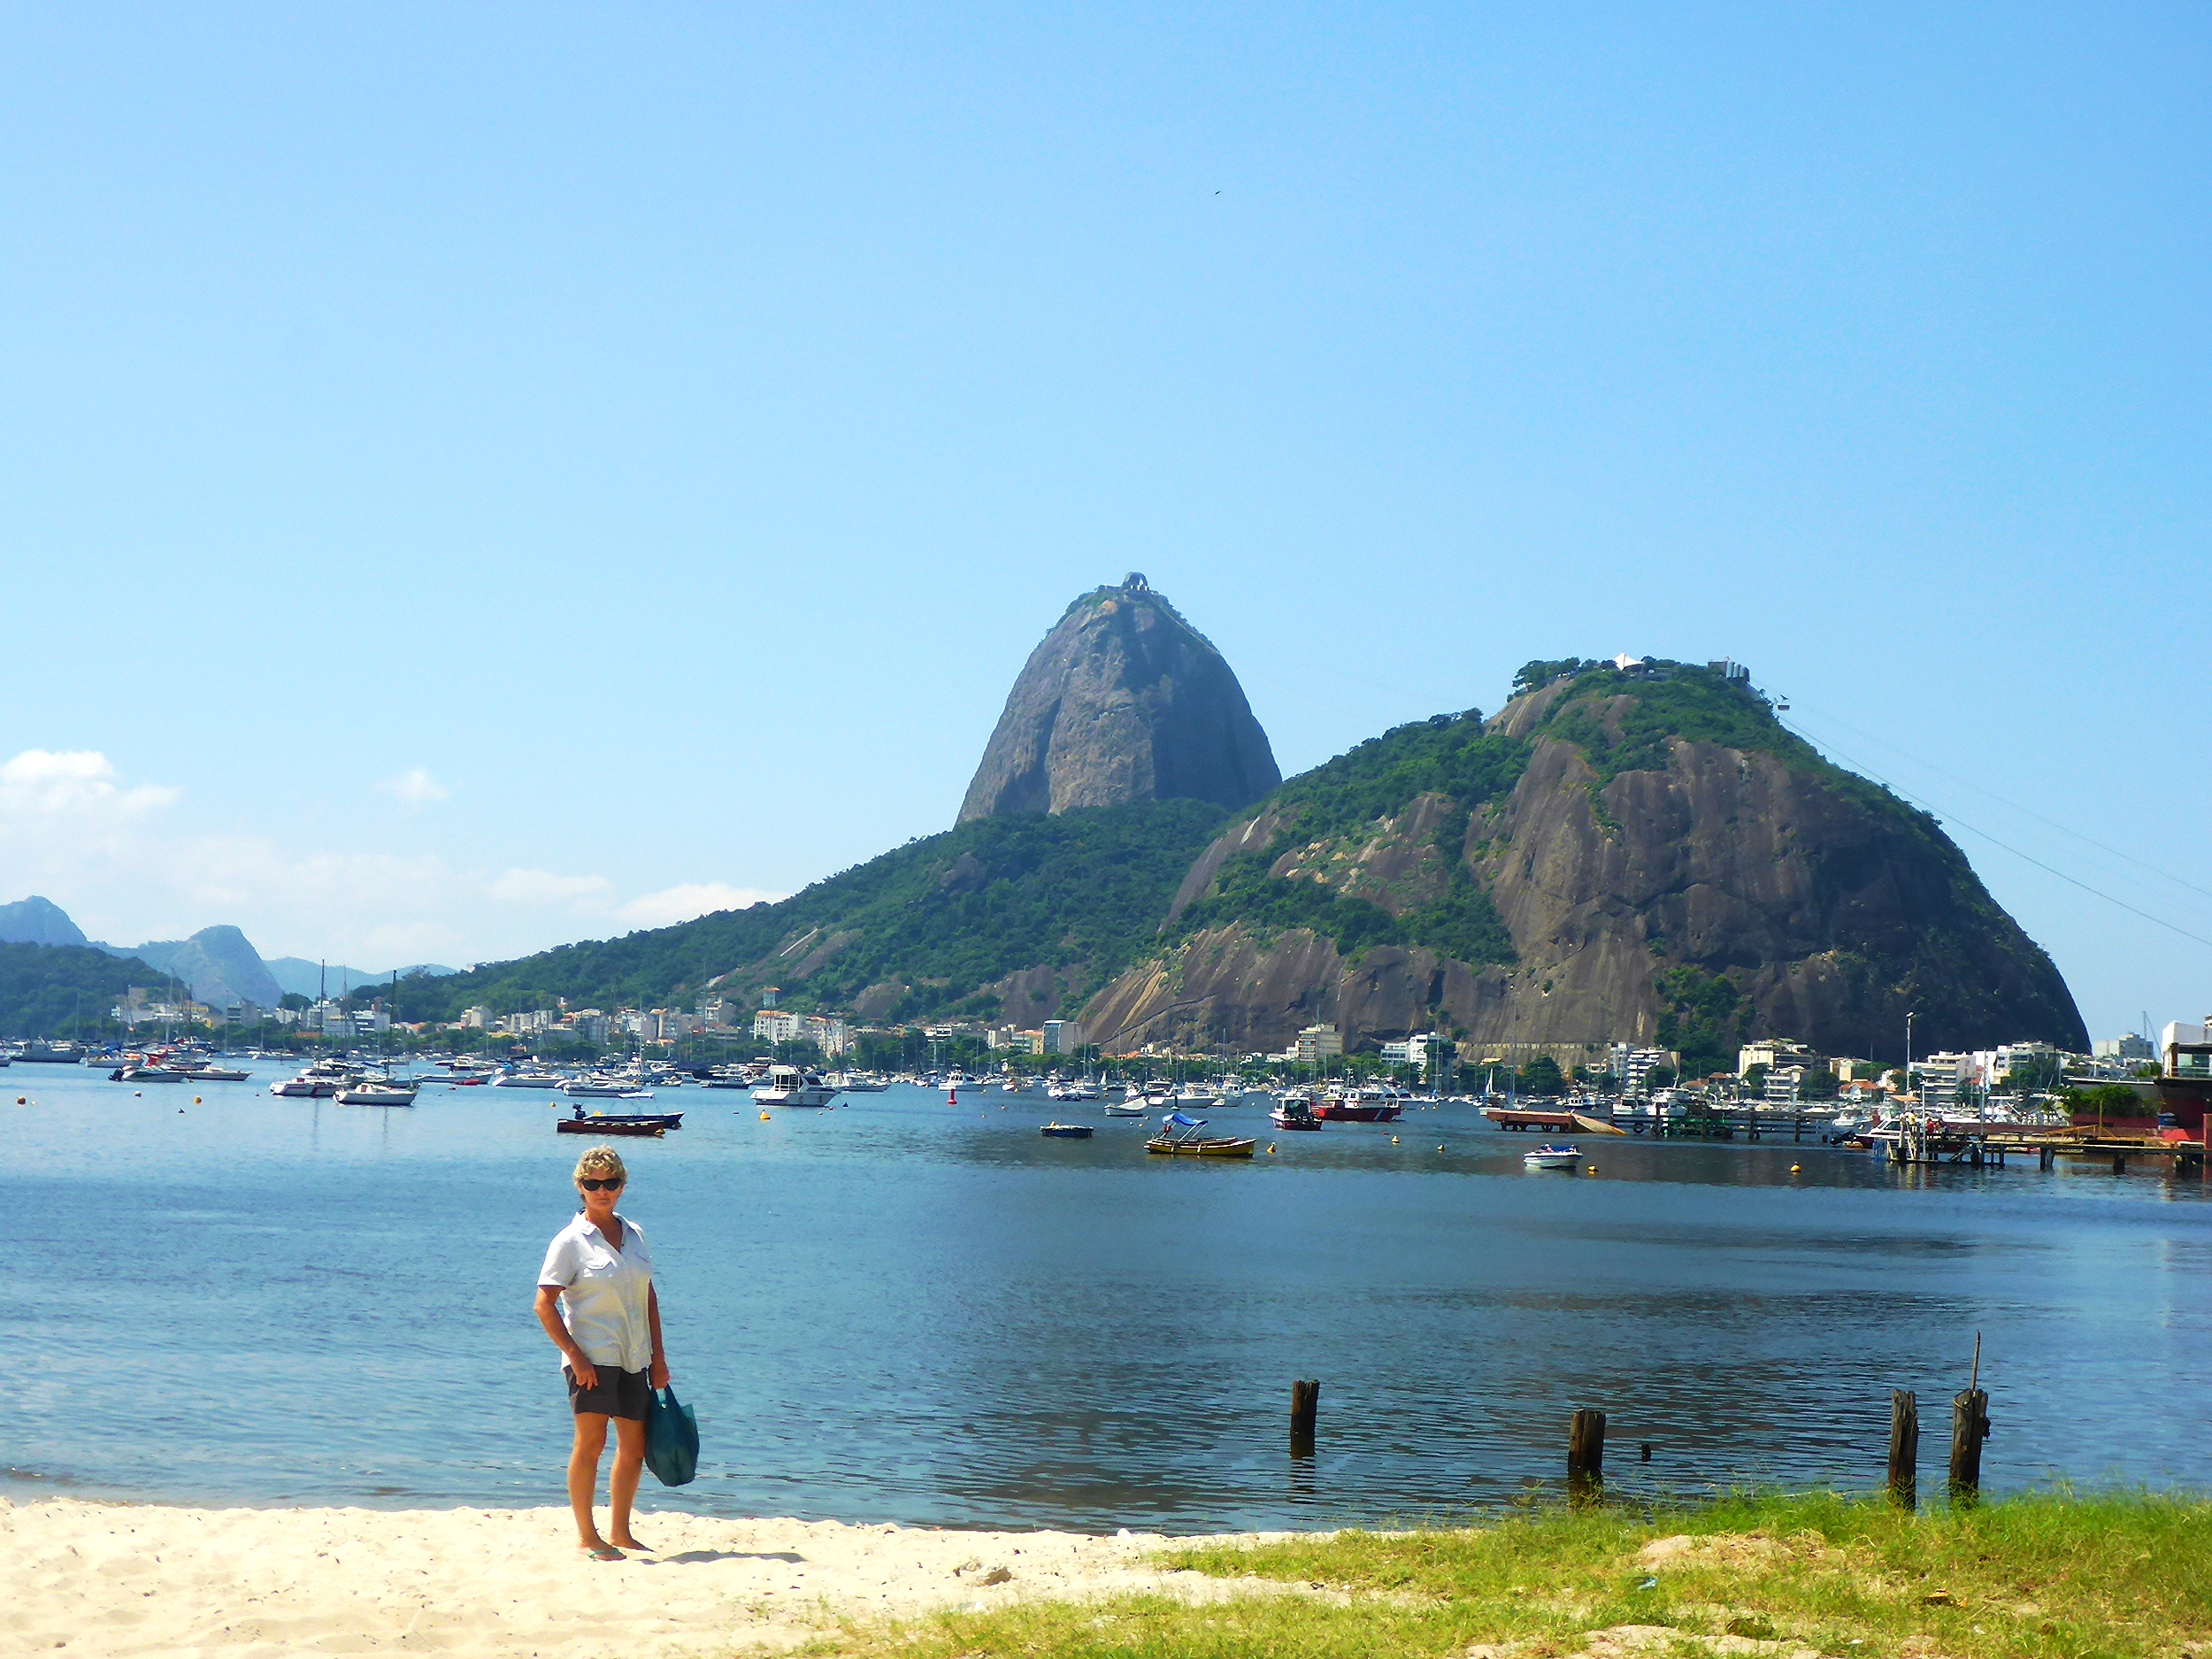 SUGALOAF MOUNTAIN FROM BOTAFOGO BEACH